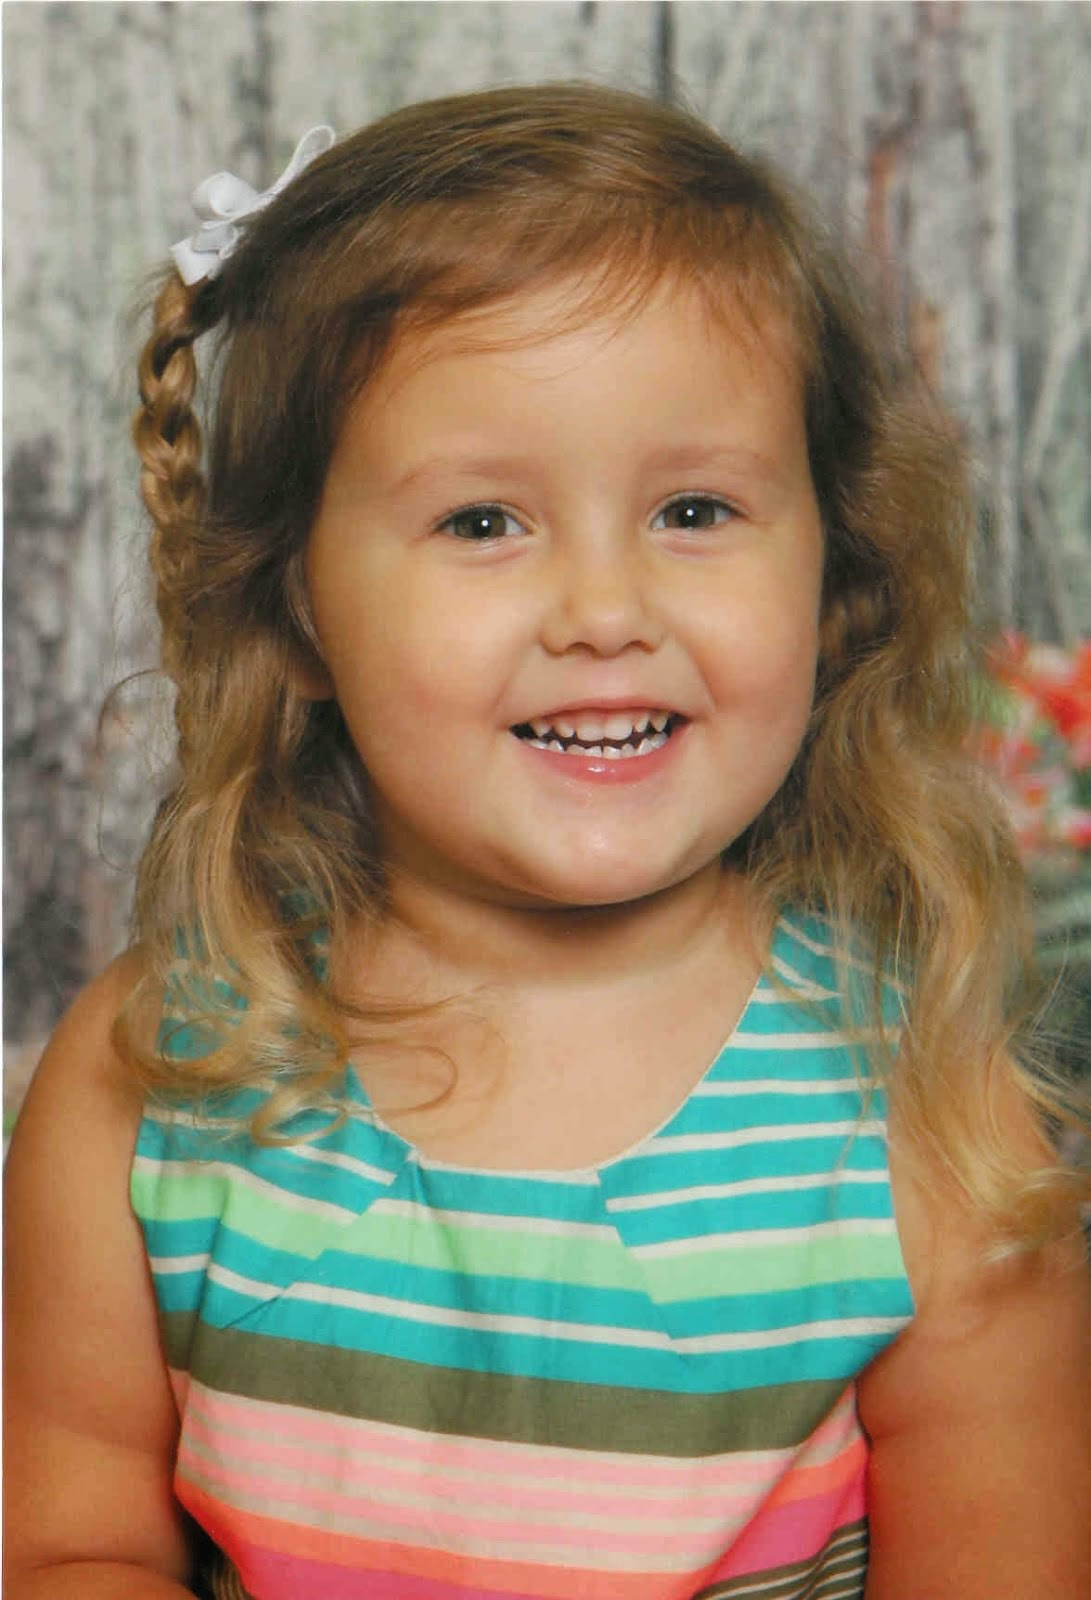 Addison, 3 Years Old